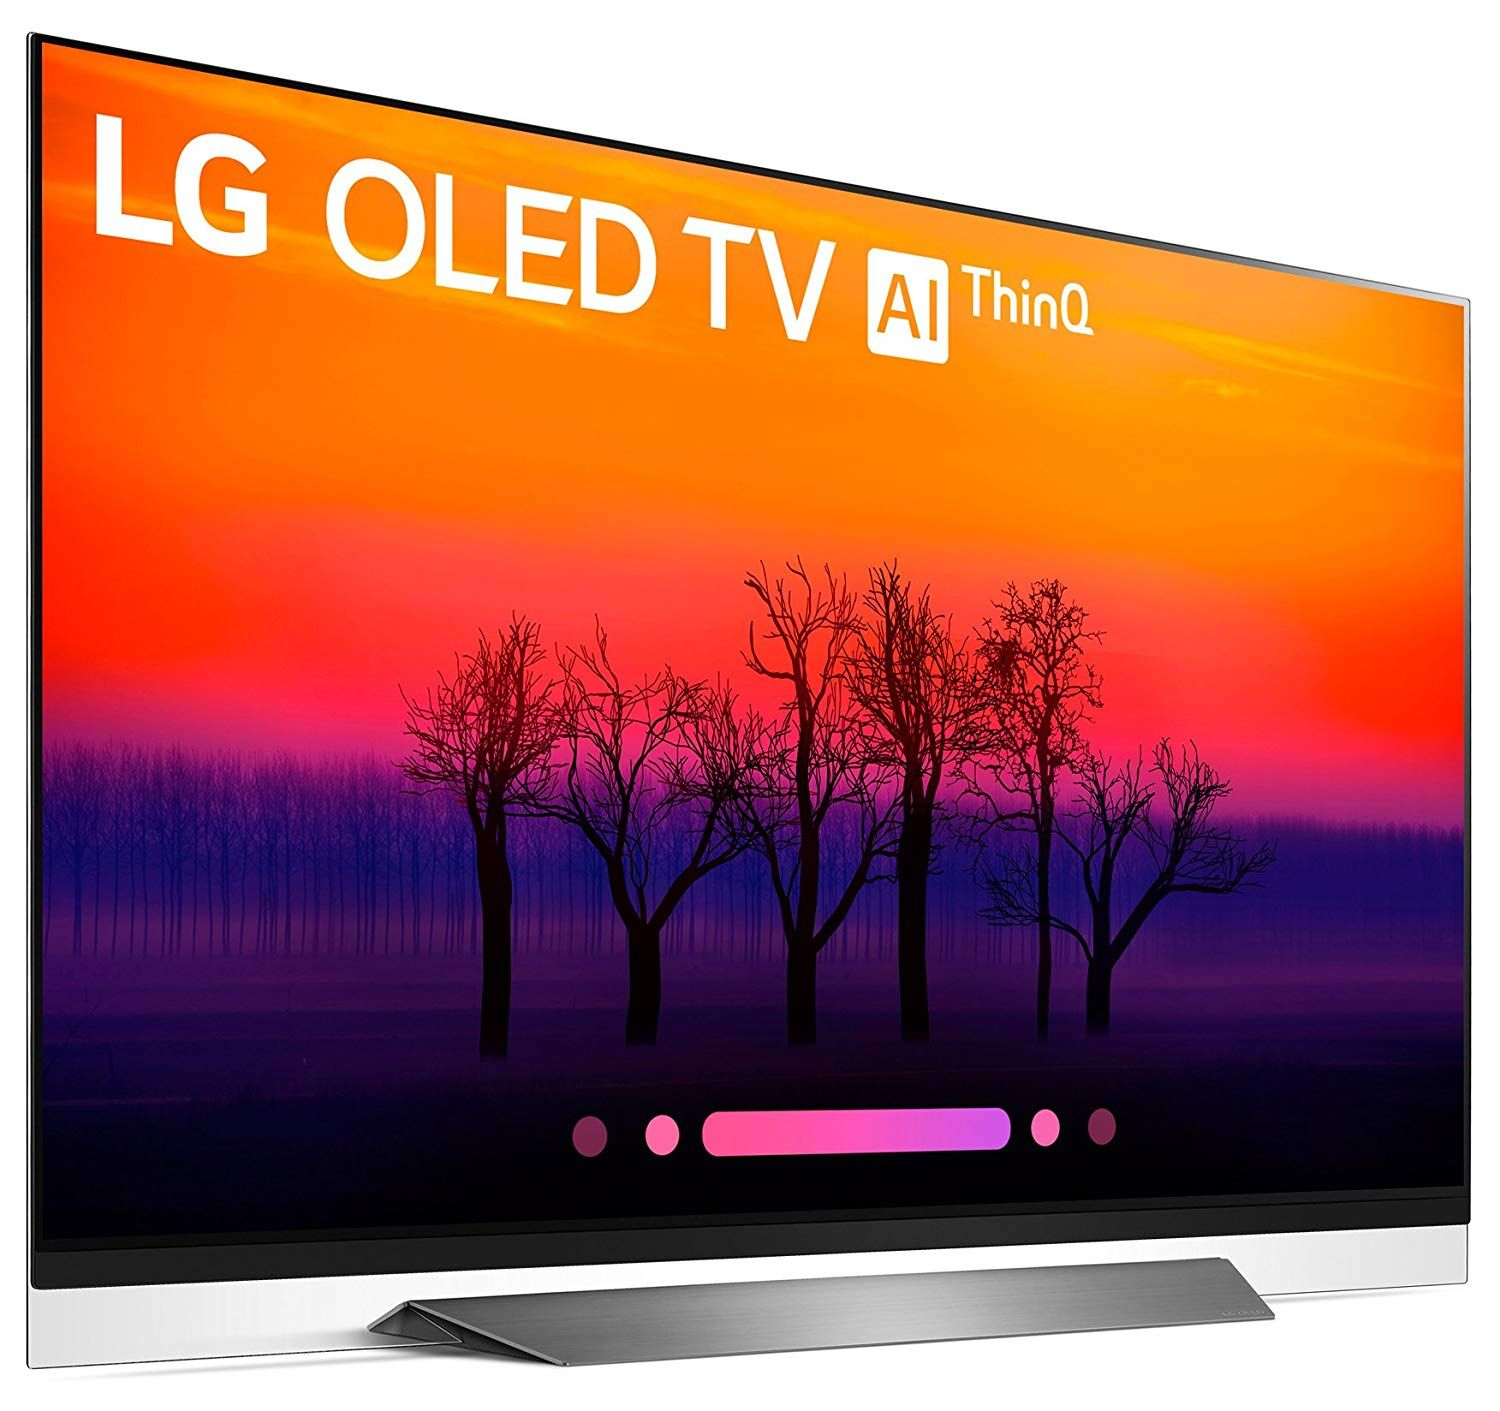 Best tv for pc gaming buying guide   Best TV collection